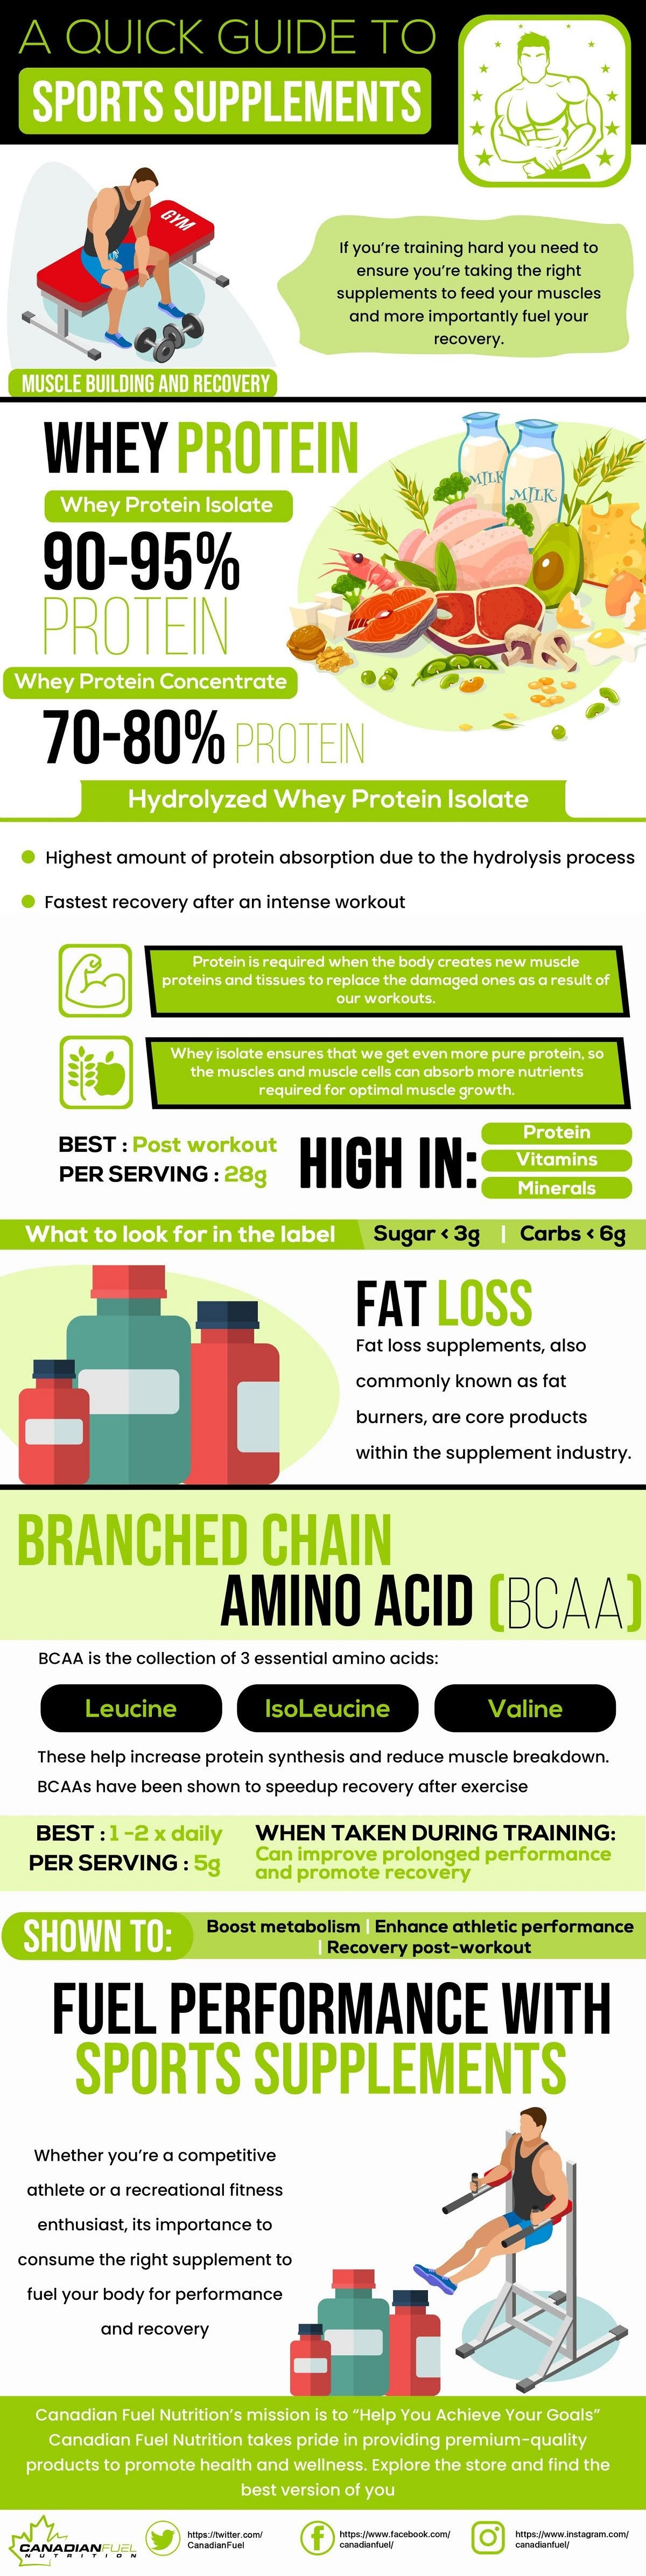 a-quick-guide-to-sports-supplements-infographic